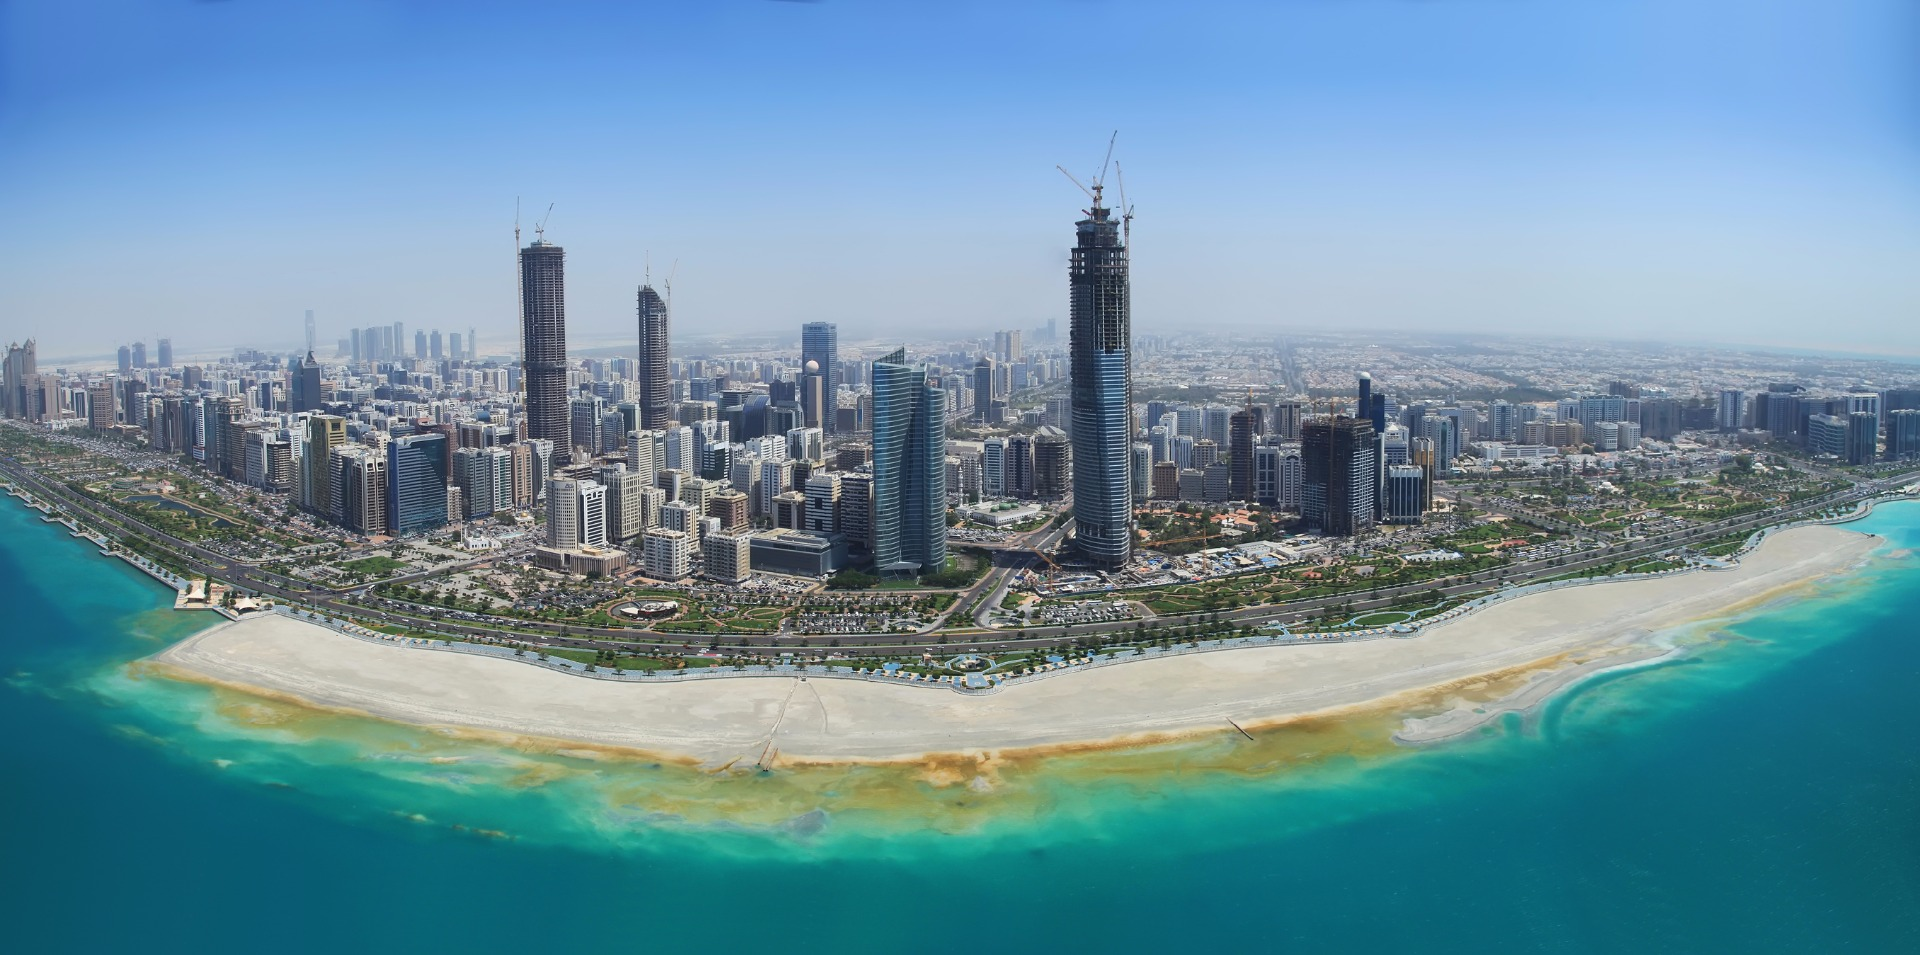 Abu Dhabi Photography Courses coupons and vouchers. Save up to Photography courses abu dhabi